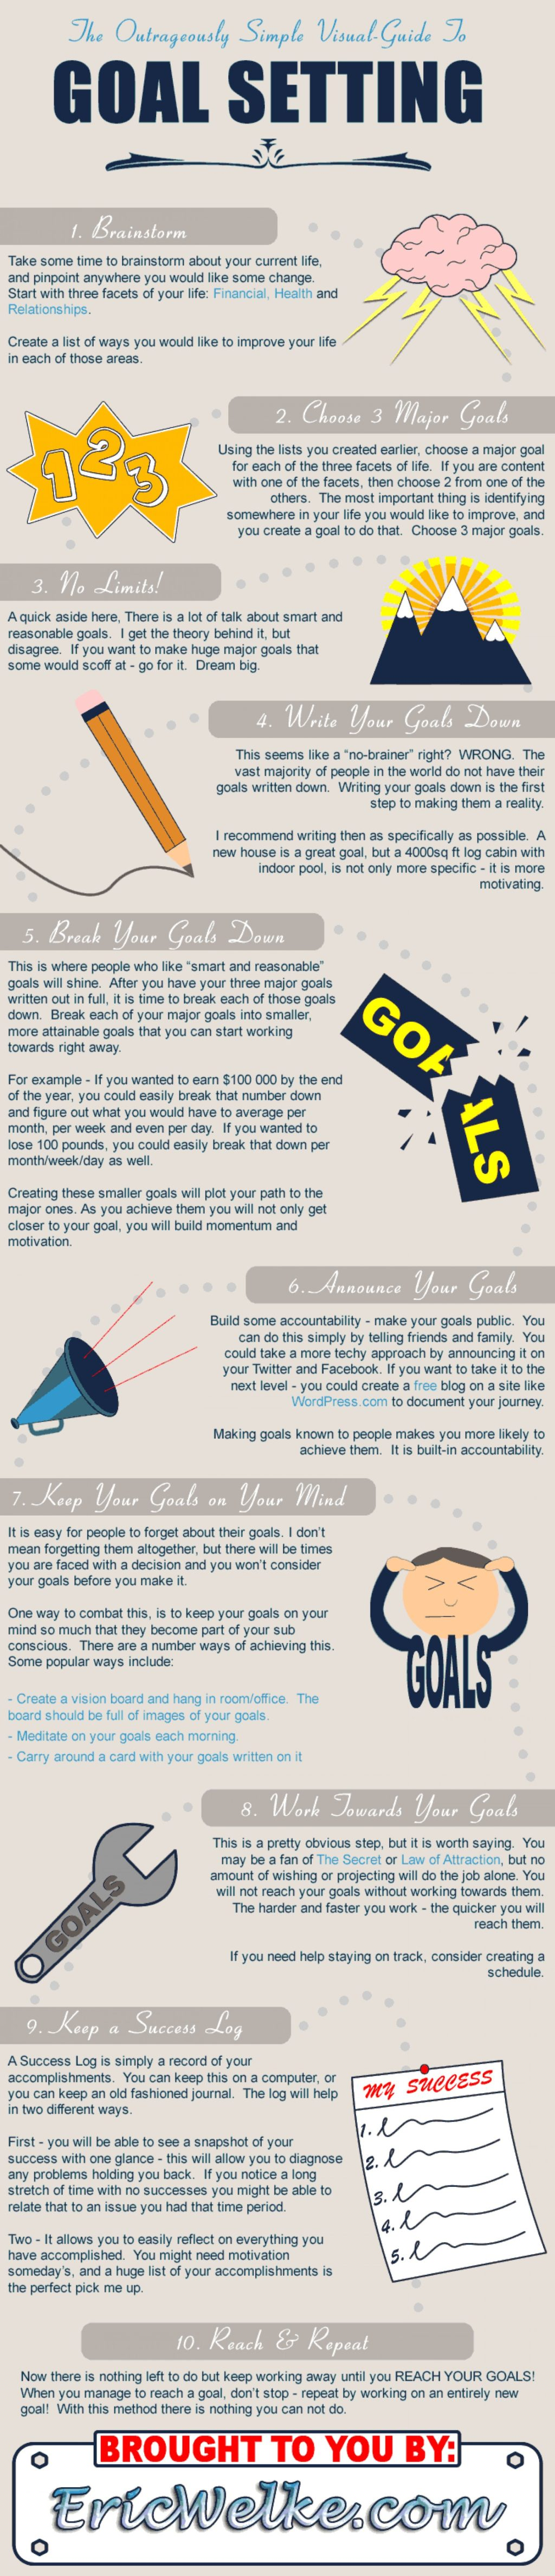 the-outrageously-simple-visualguide-to-goal-setting-infographic